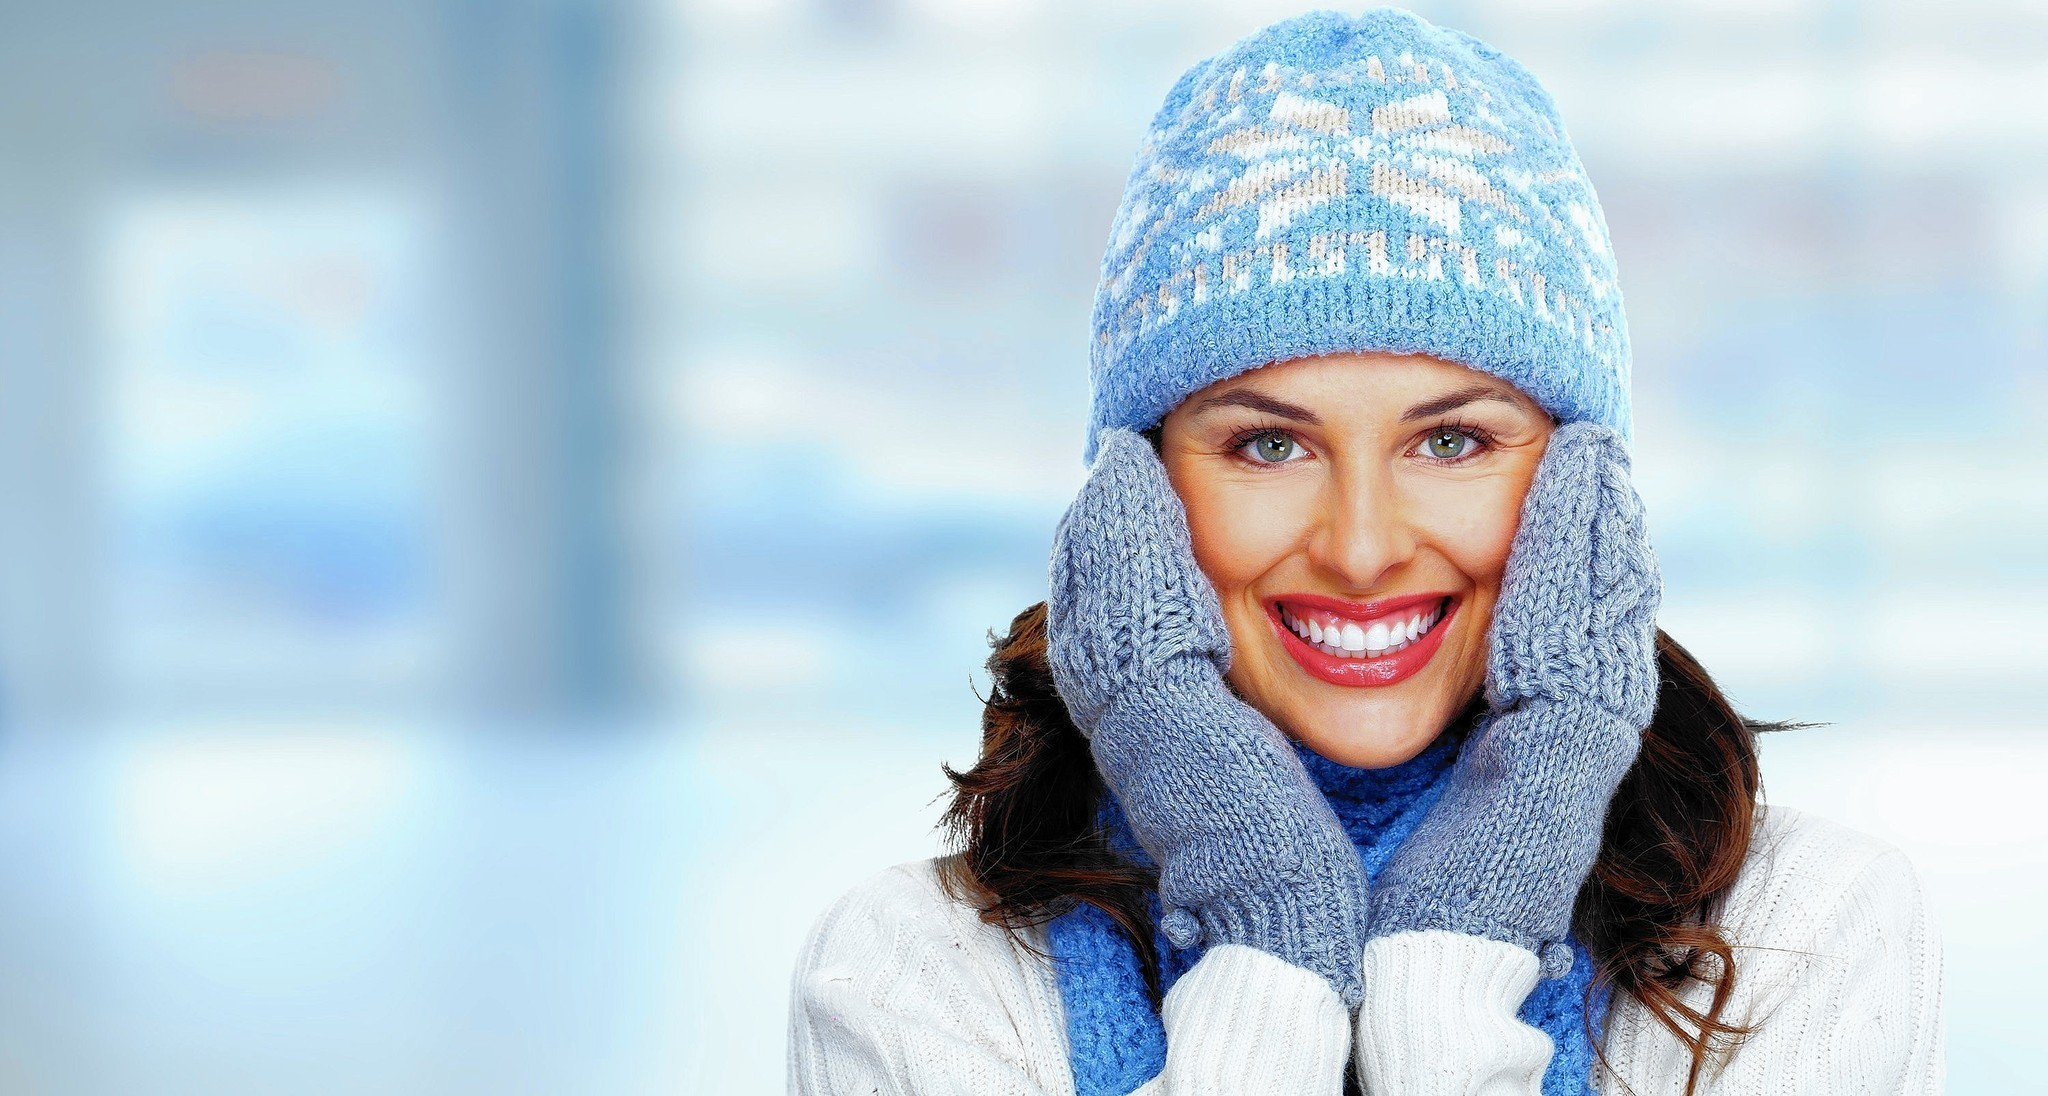 How to protect your skin in winter weather